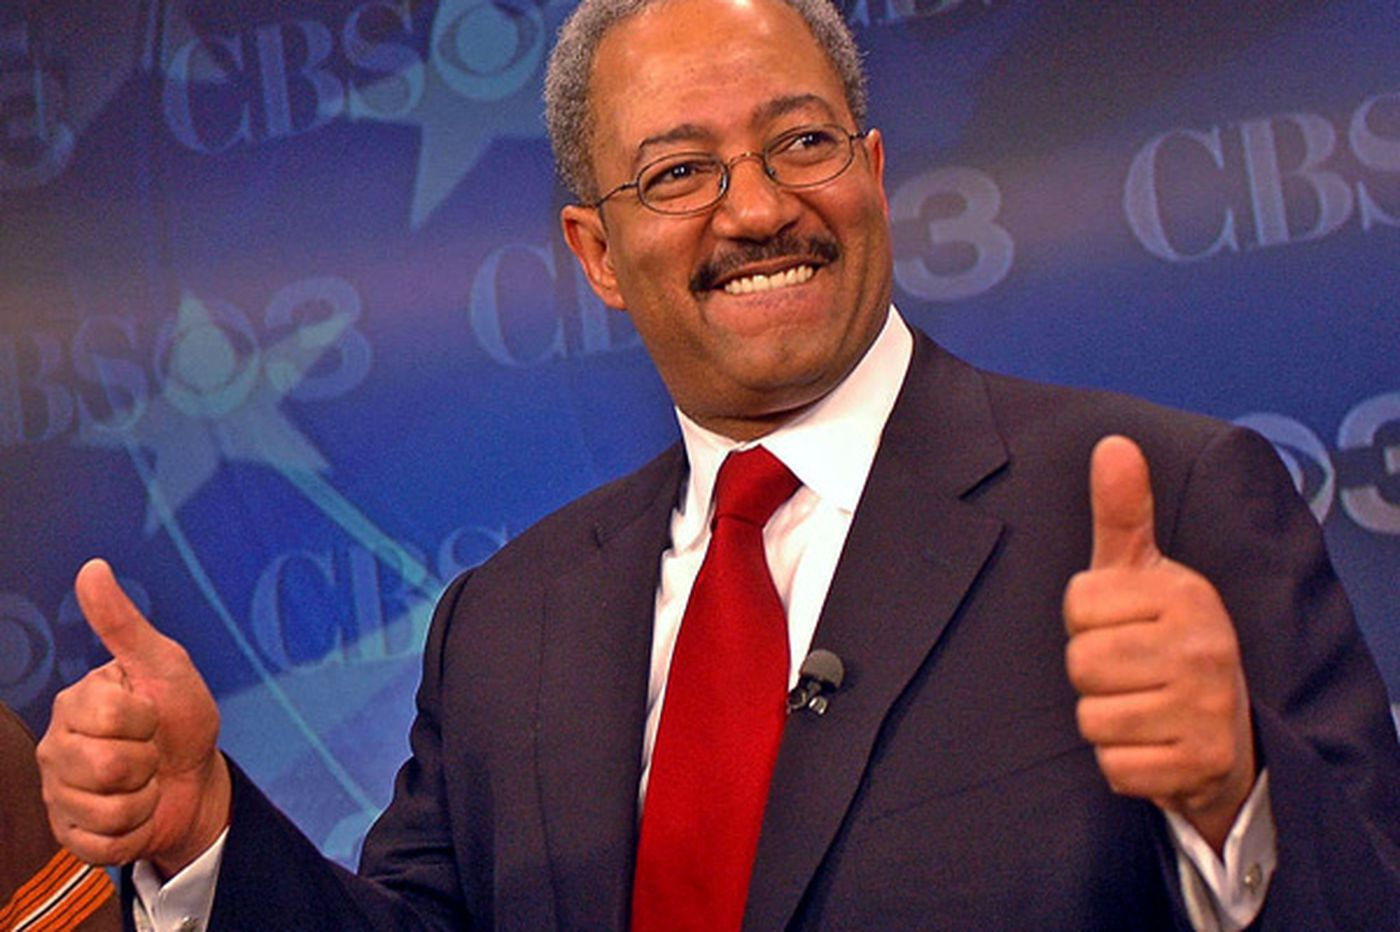 """To observers, Fattah indictment """"appalling"""" and """"sad"""""""